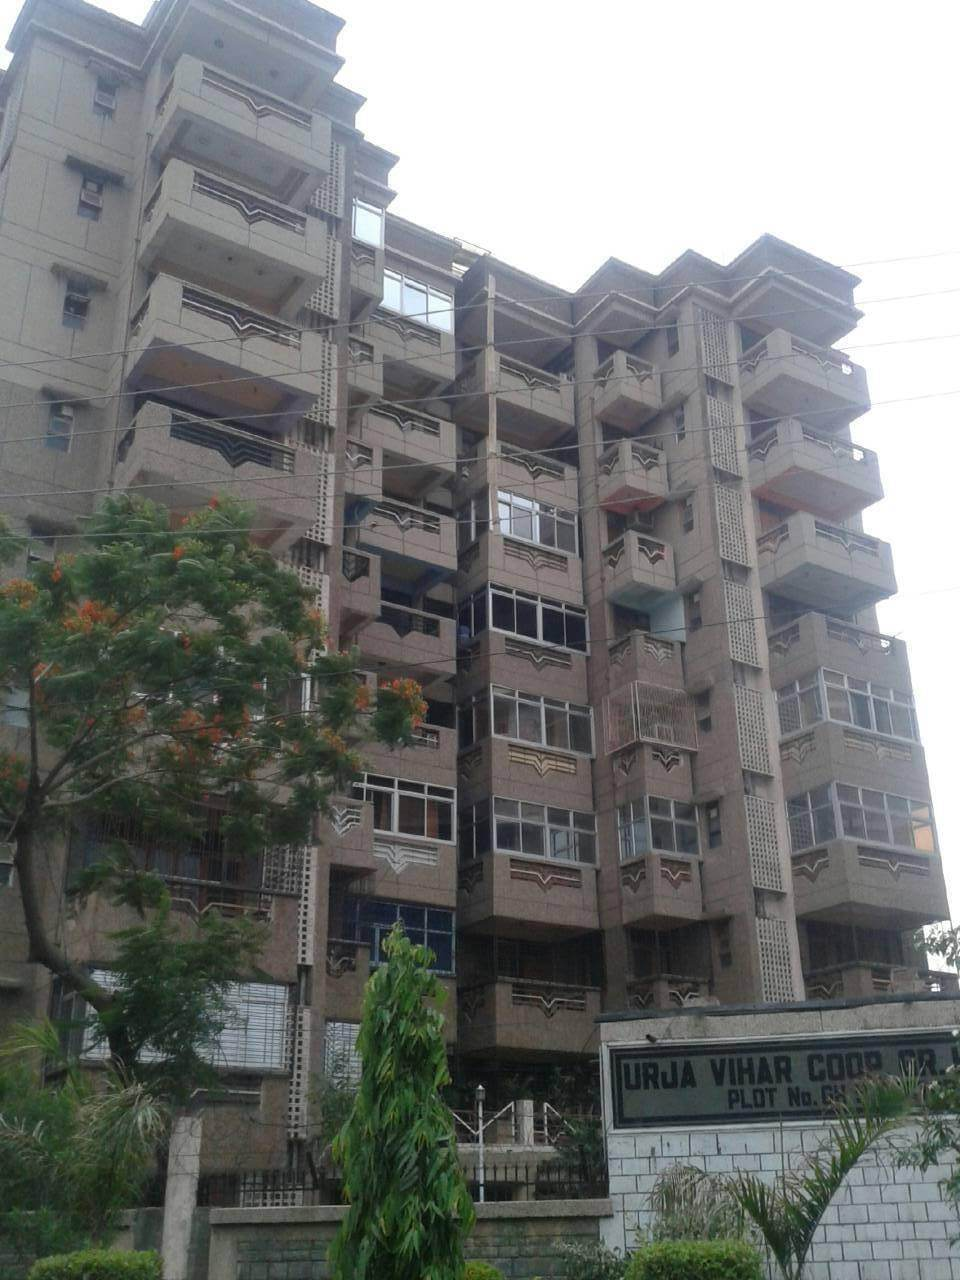 Flat 1850 sqft with 4 Bedroom, 3 Bathroom for rent at Faridabad, Haryana